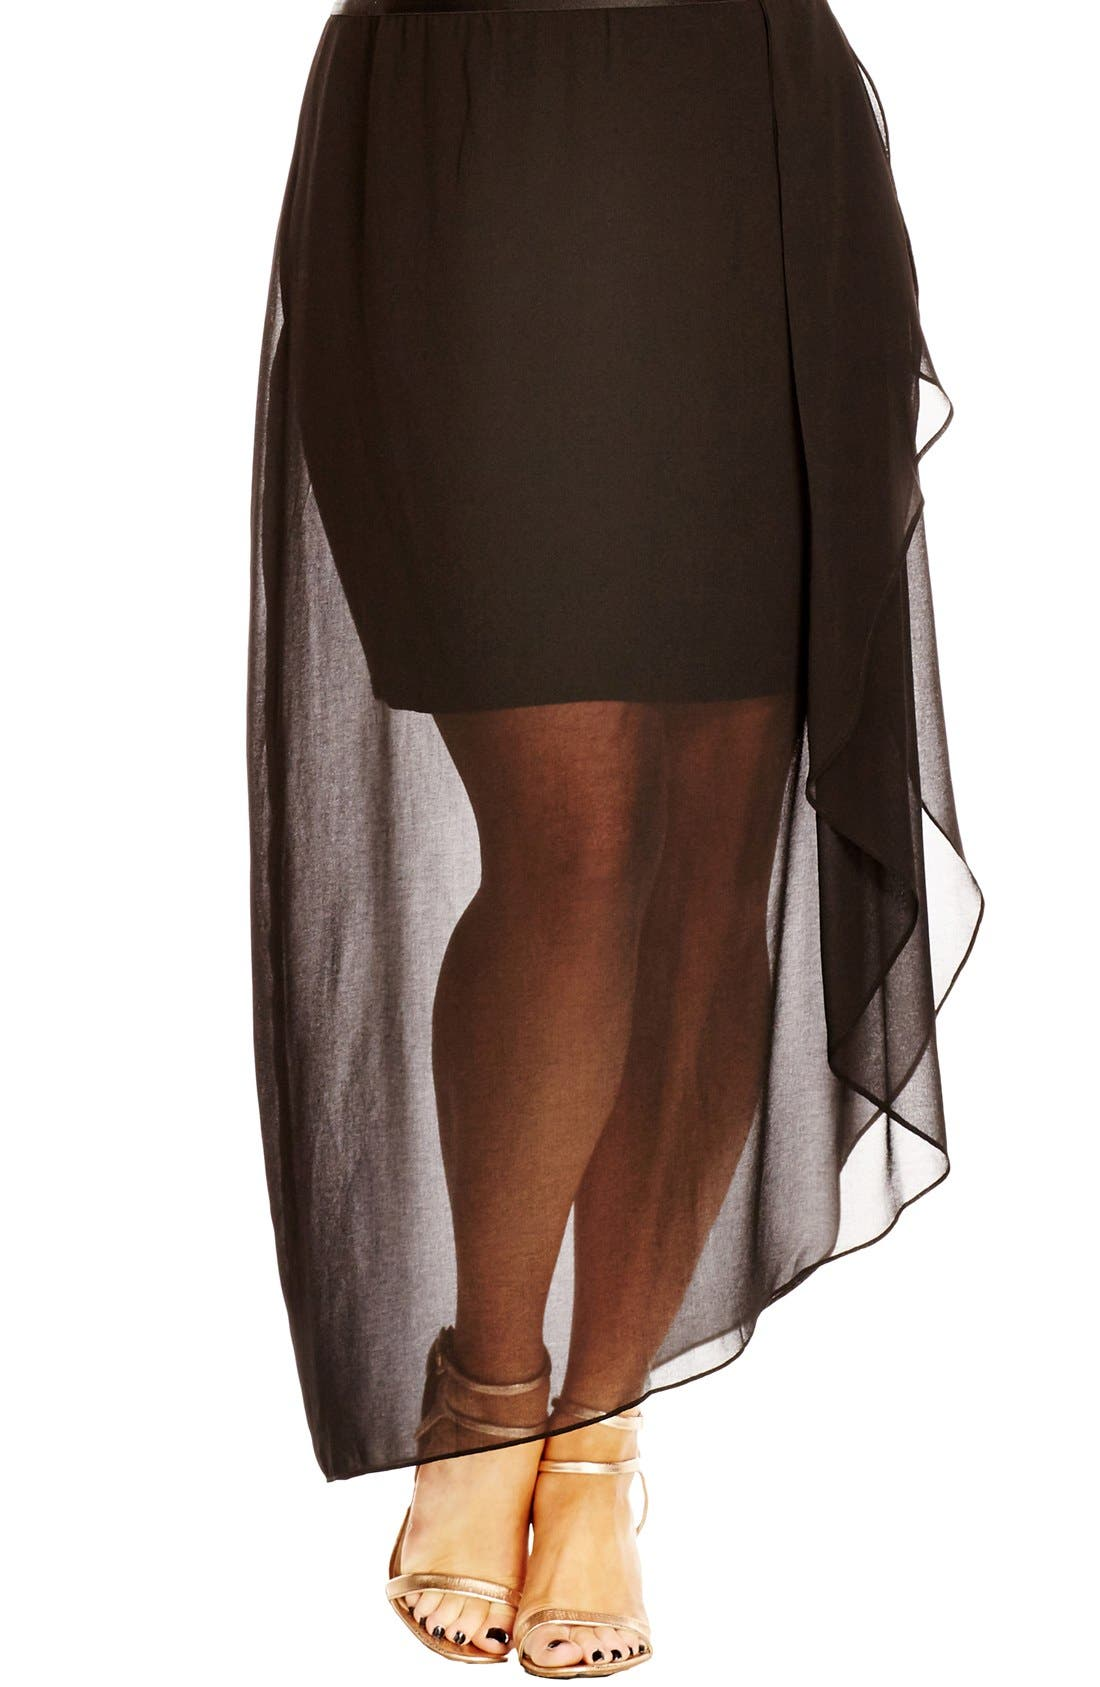 Alternate Image 1 Selected - City Chic Layered Frill Skirt (Plus Size)